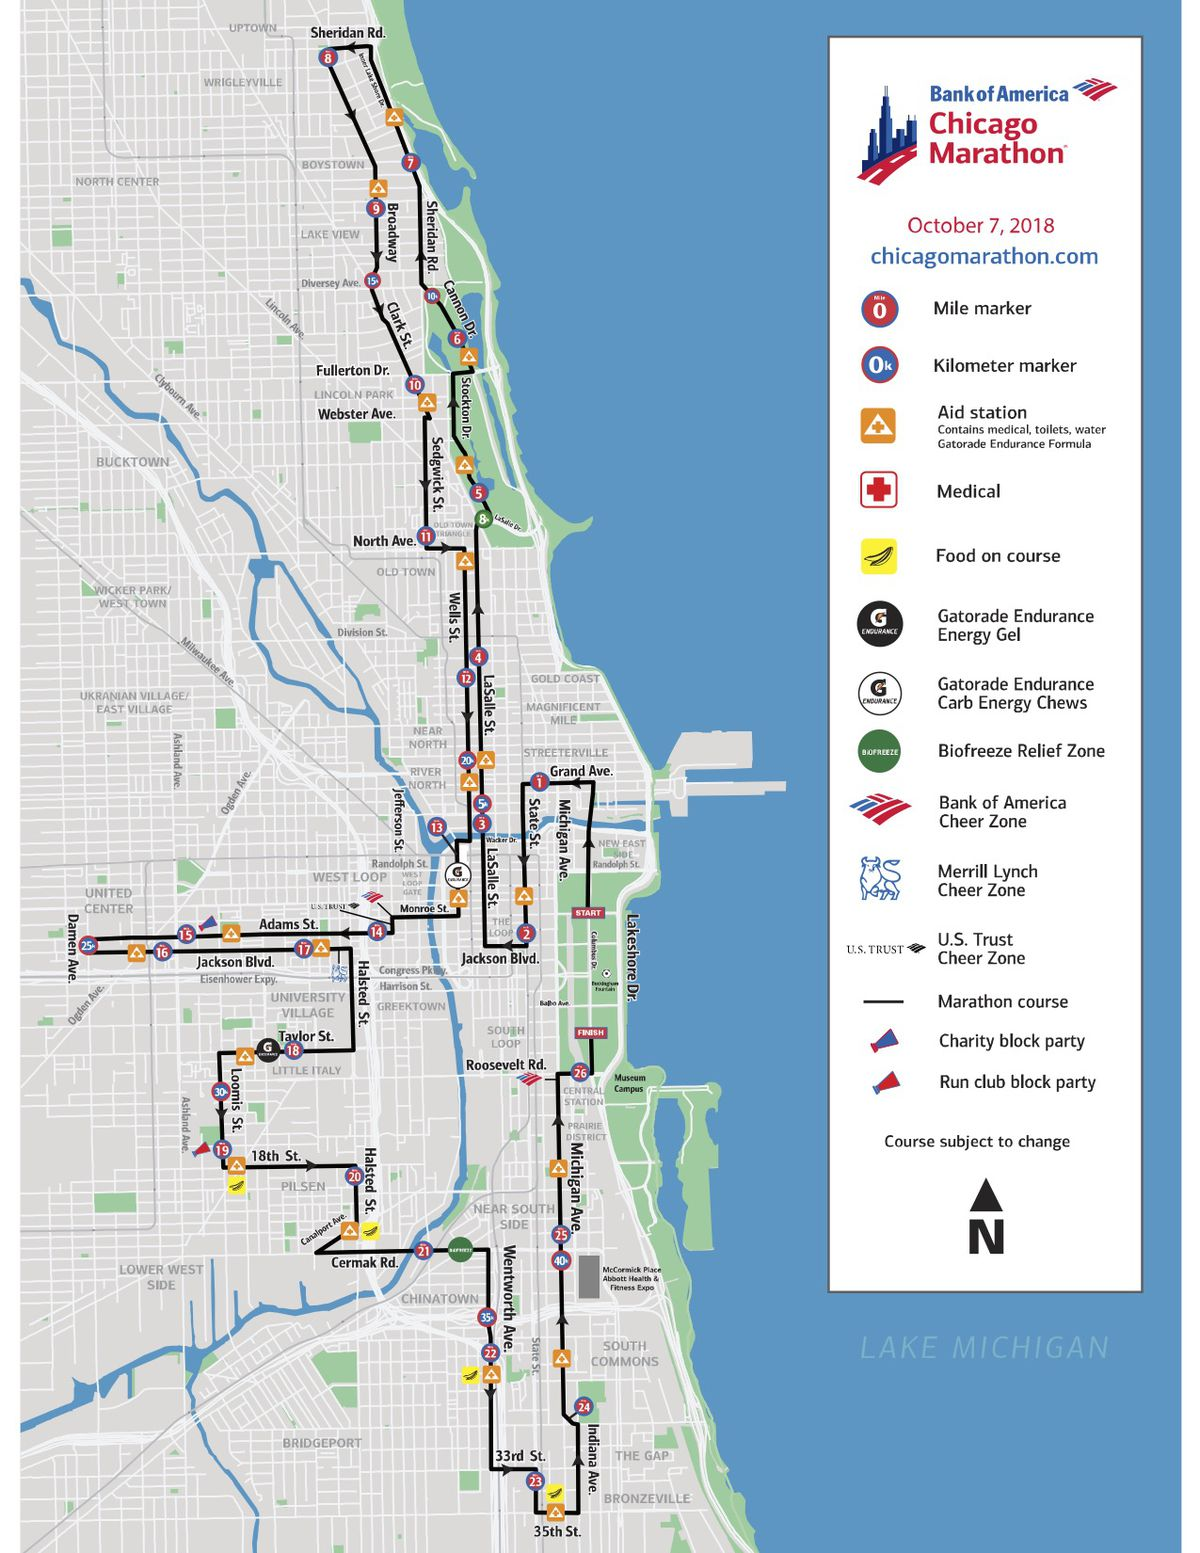 Chicago Marathon: Street closures, route, schedule, and more ... on